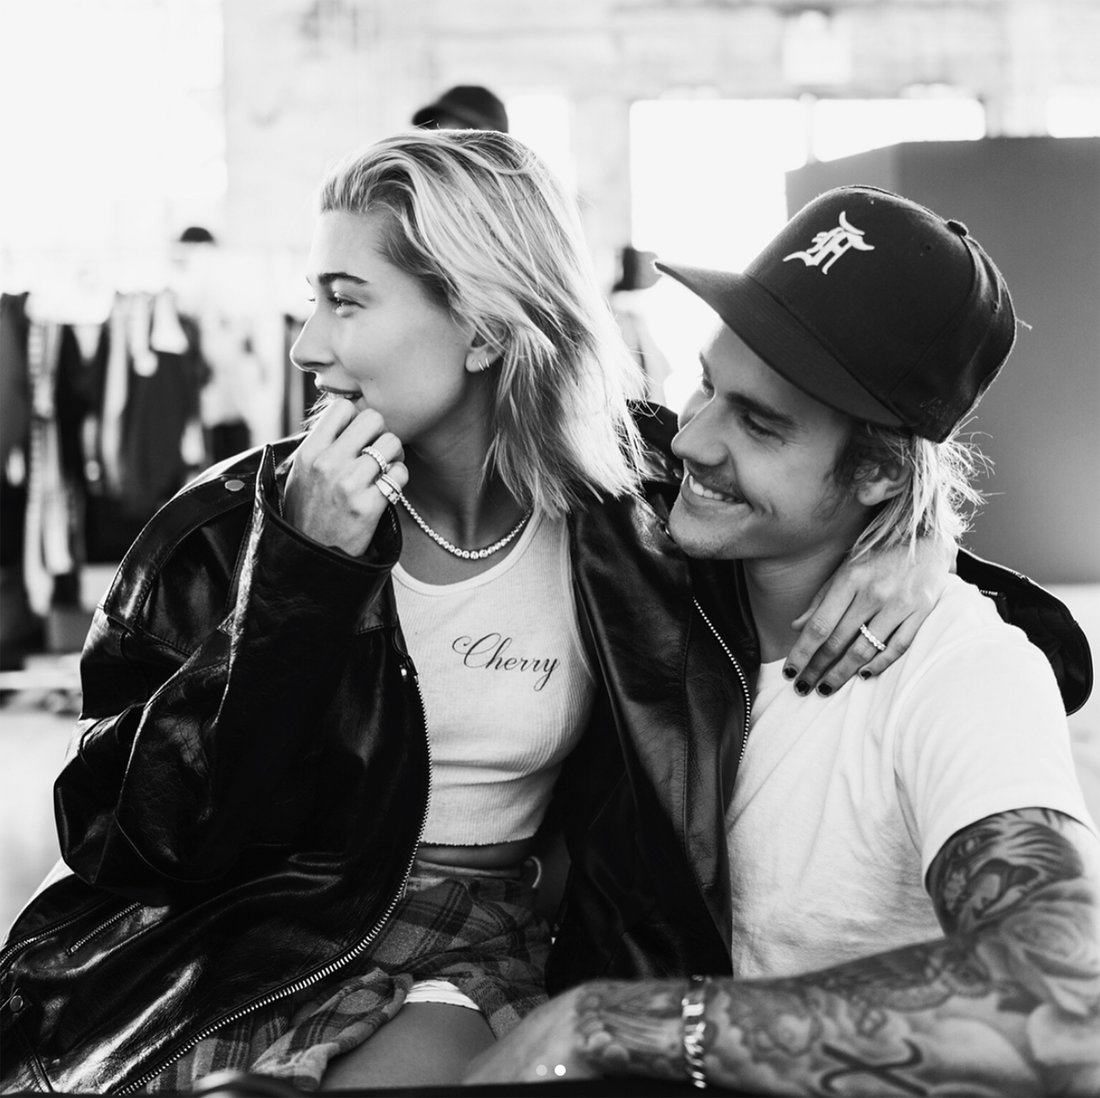 Hailey Baldwin - From being Team Jelena to Justin's fiance